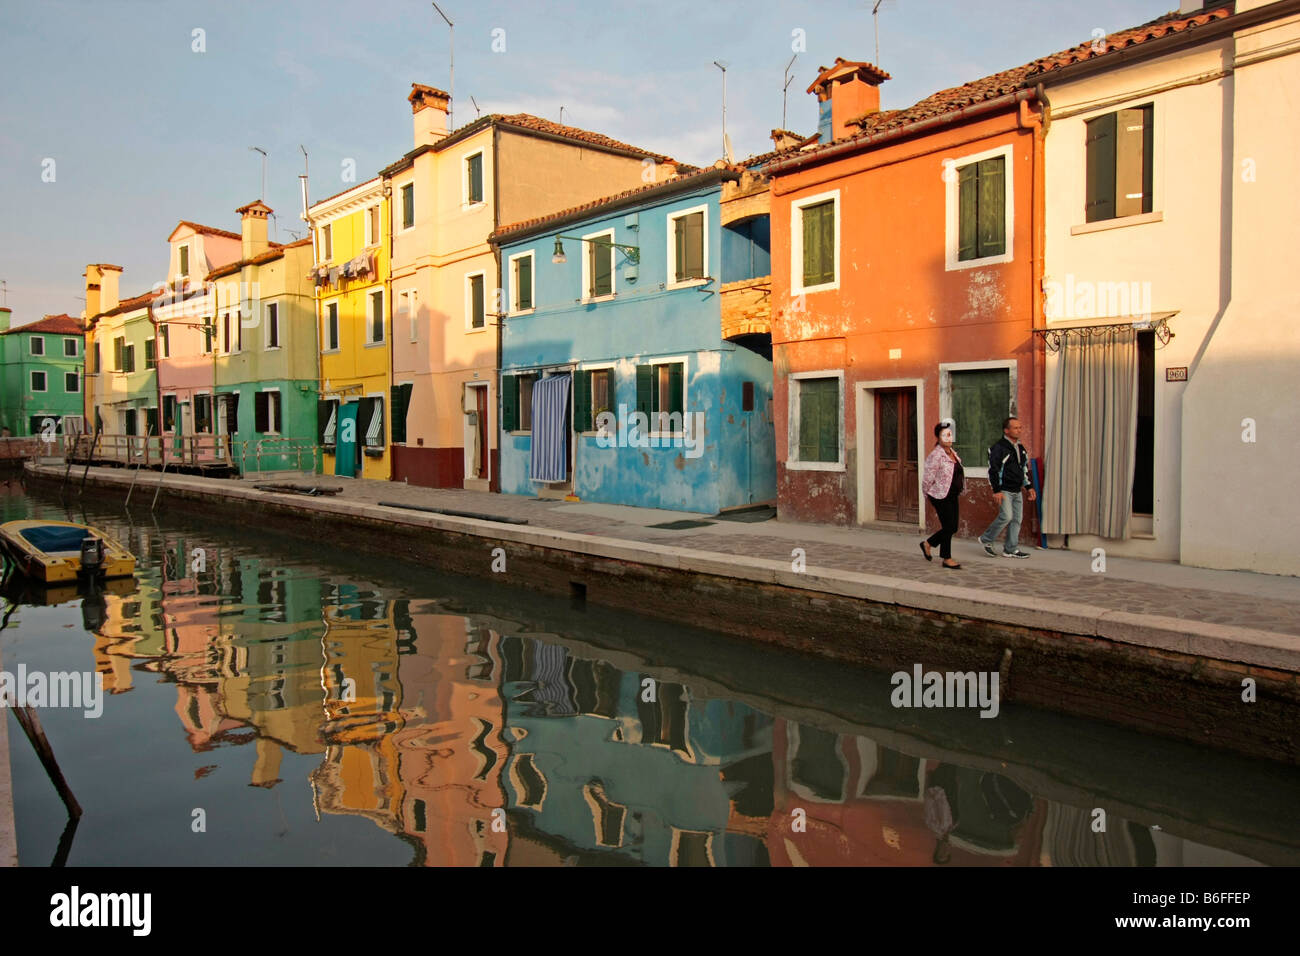 Island of Burano in the Venetian Lagoon, renowned for its colorfully painted houses, Veneto, Italy, Europe - Stock Image